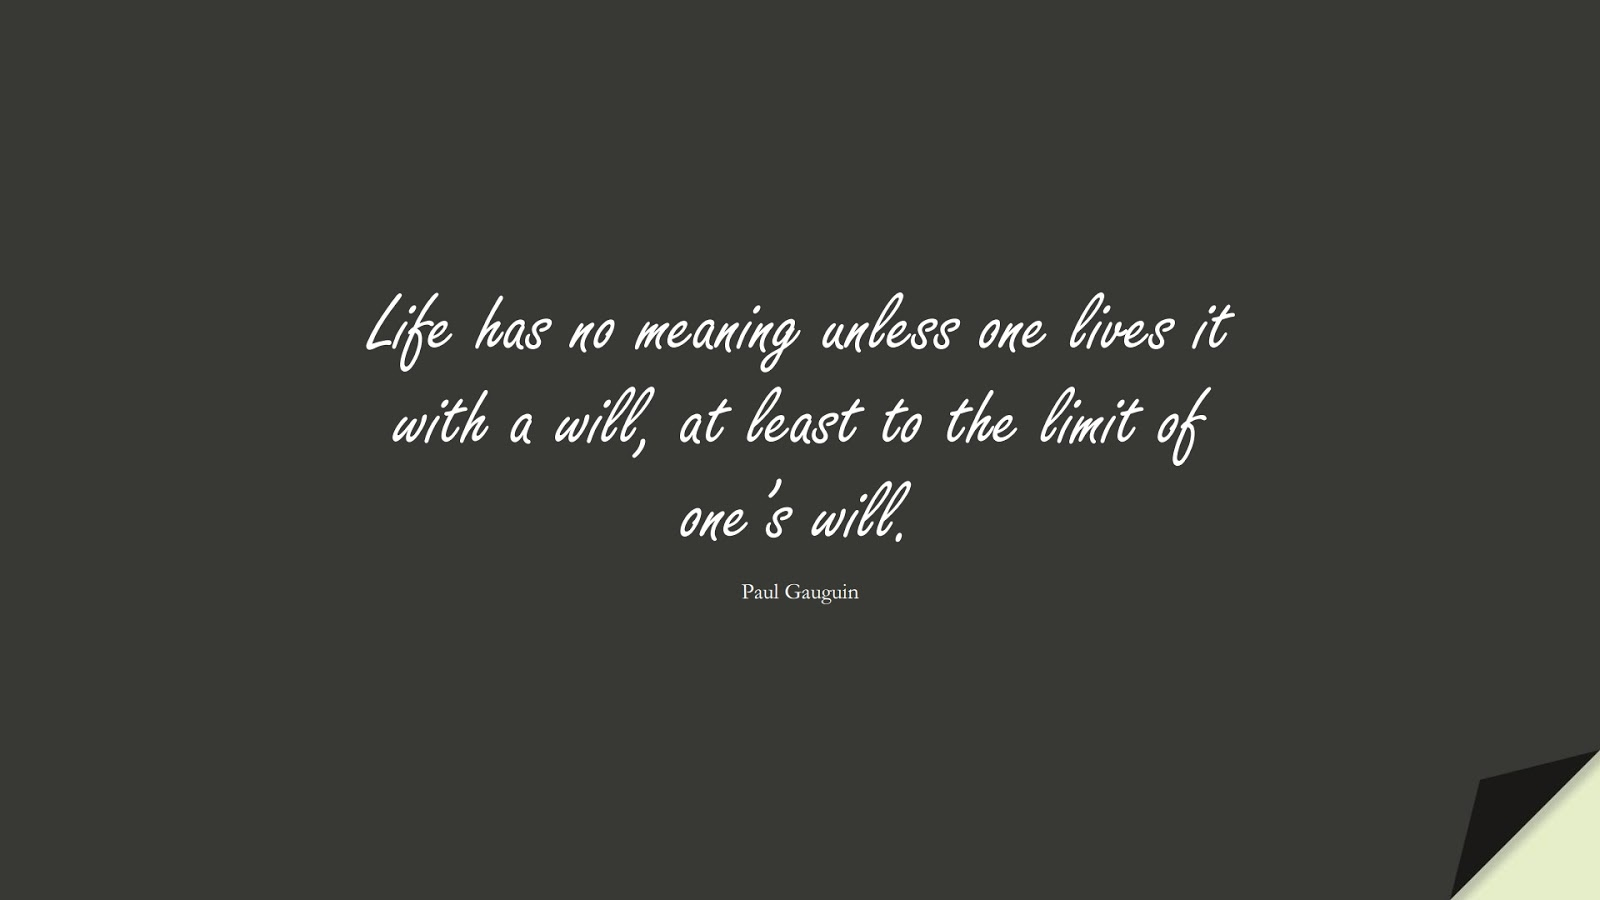 Life has no meaning unless one lives it with a will, at least to the limit of one's will. (Paul Gauguin);  #LifeQuotes